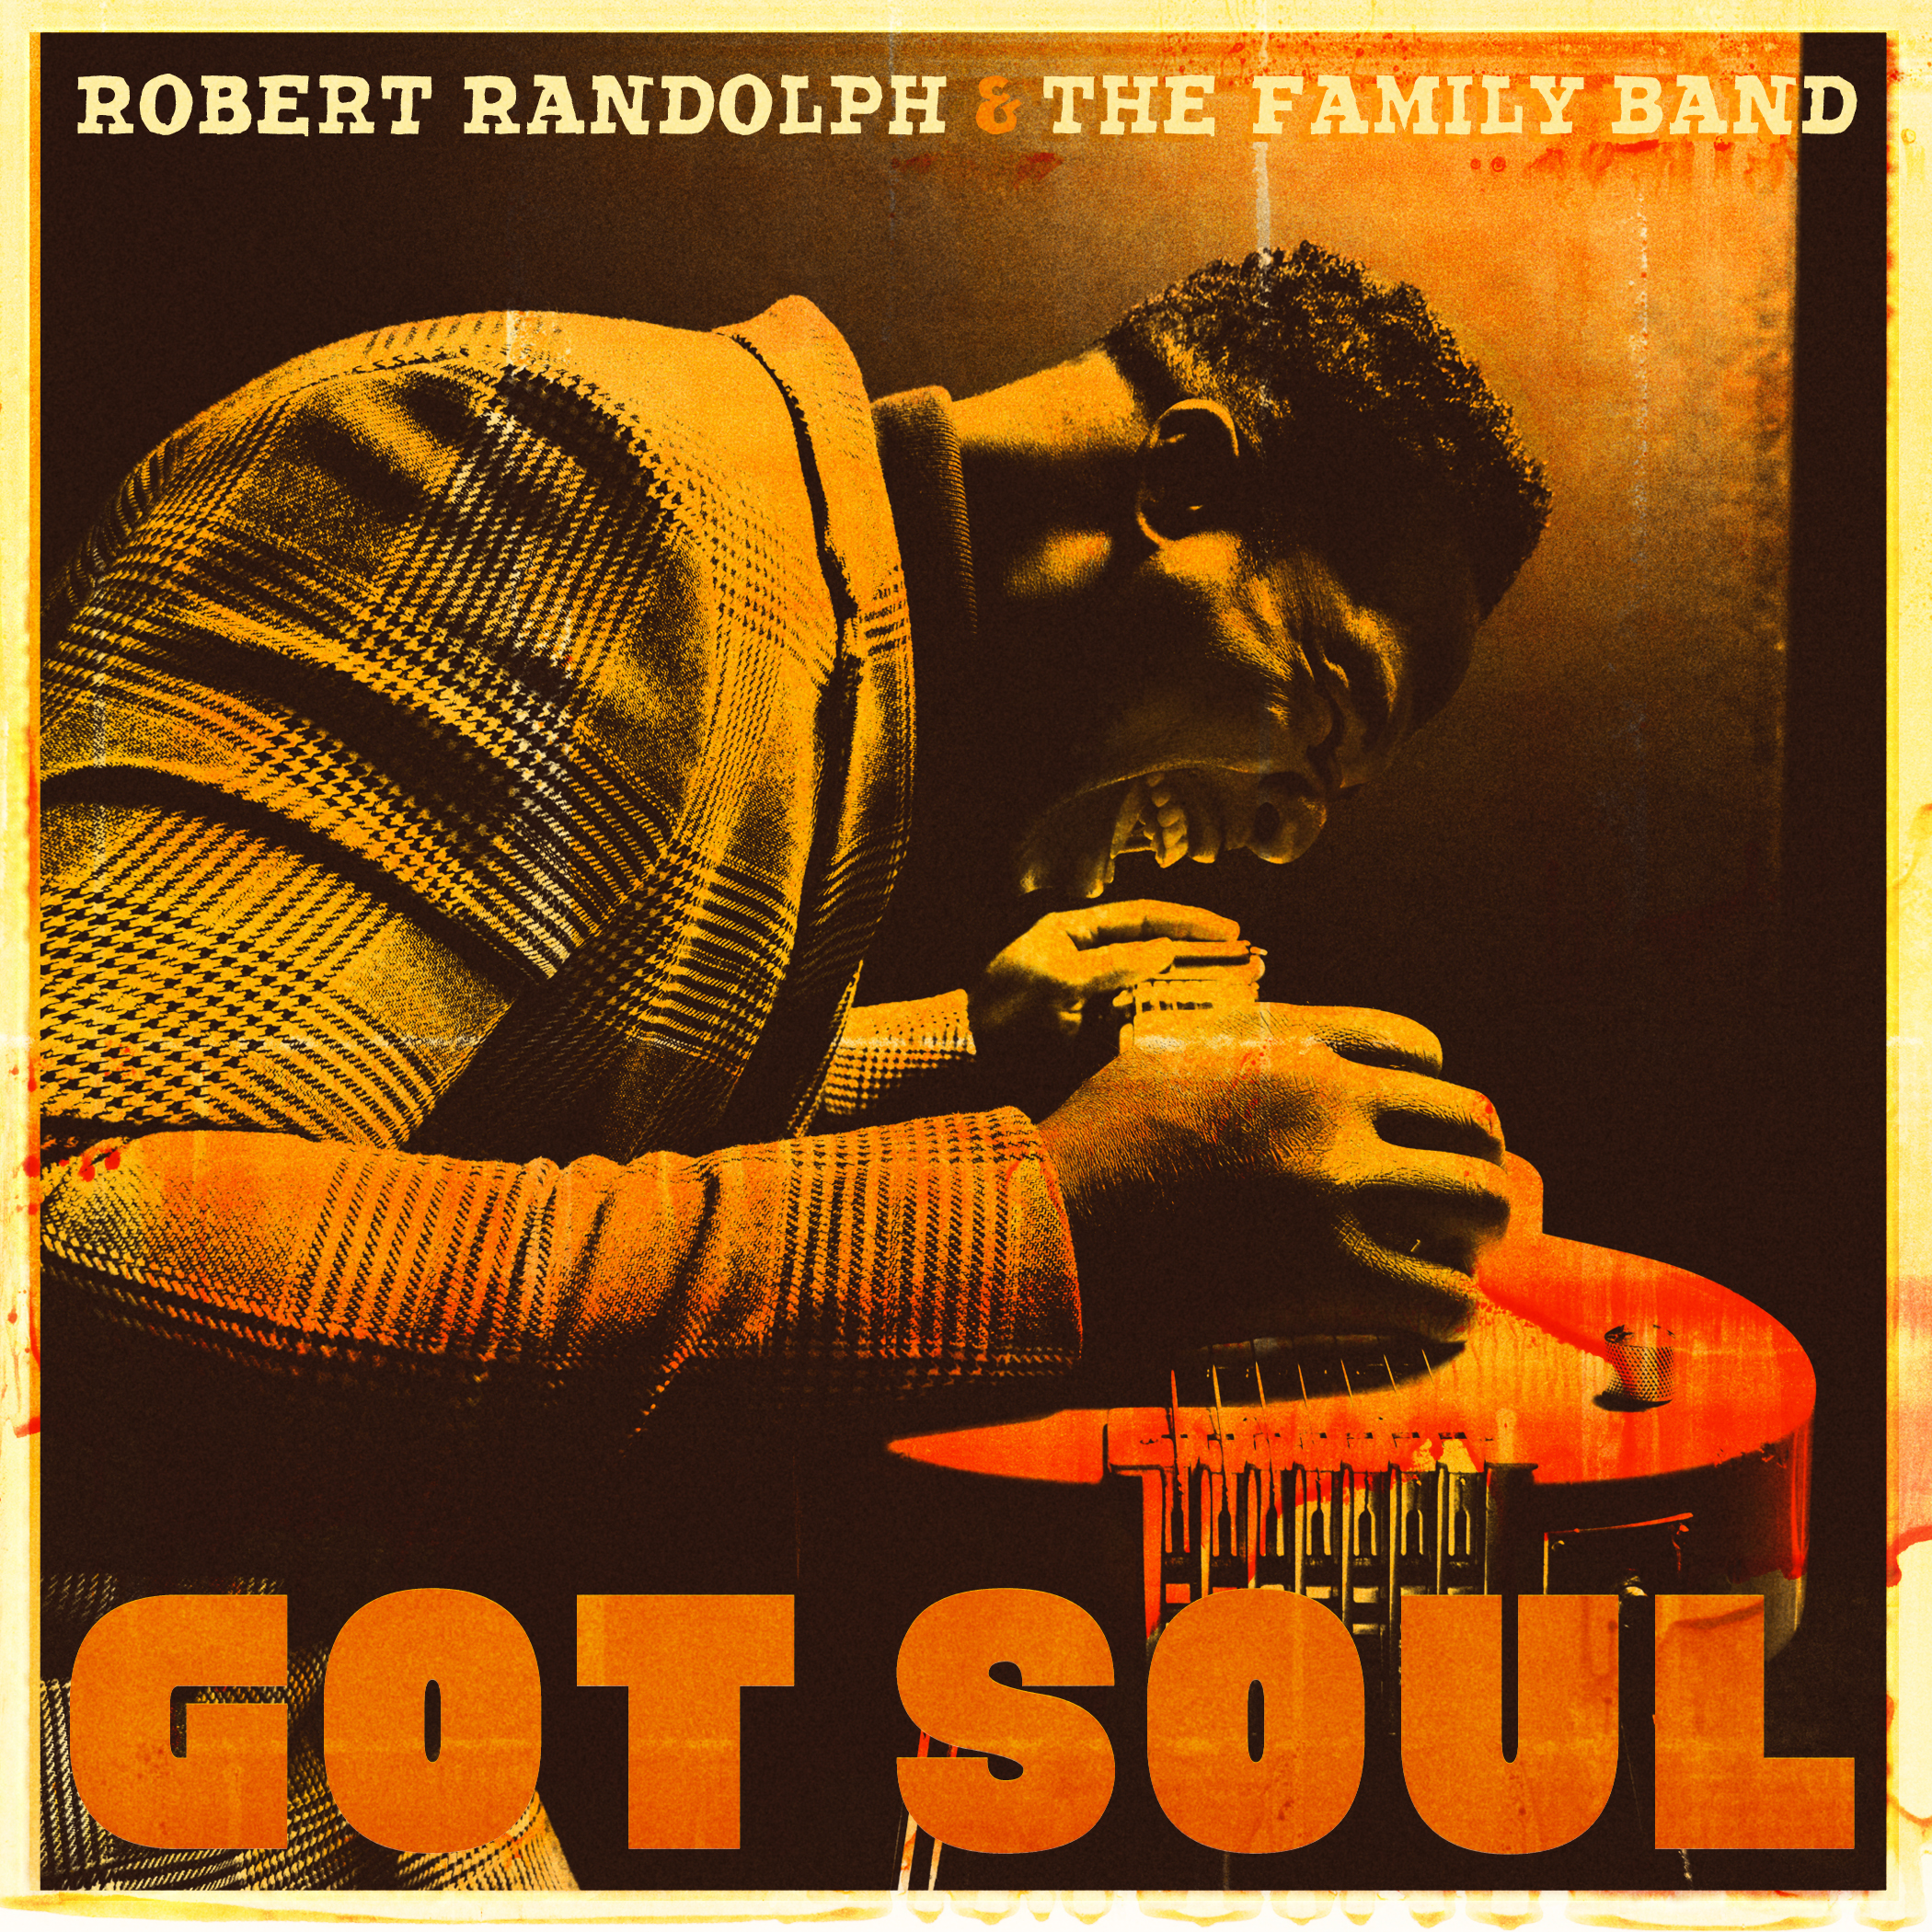 Robert Randolph New Album 'Got Soul' Out Now Plus Tour Announcement! Featuring Anthony Hamilton, Darius Rucker, Cory Henry